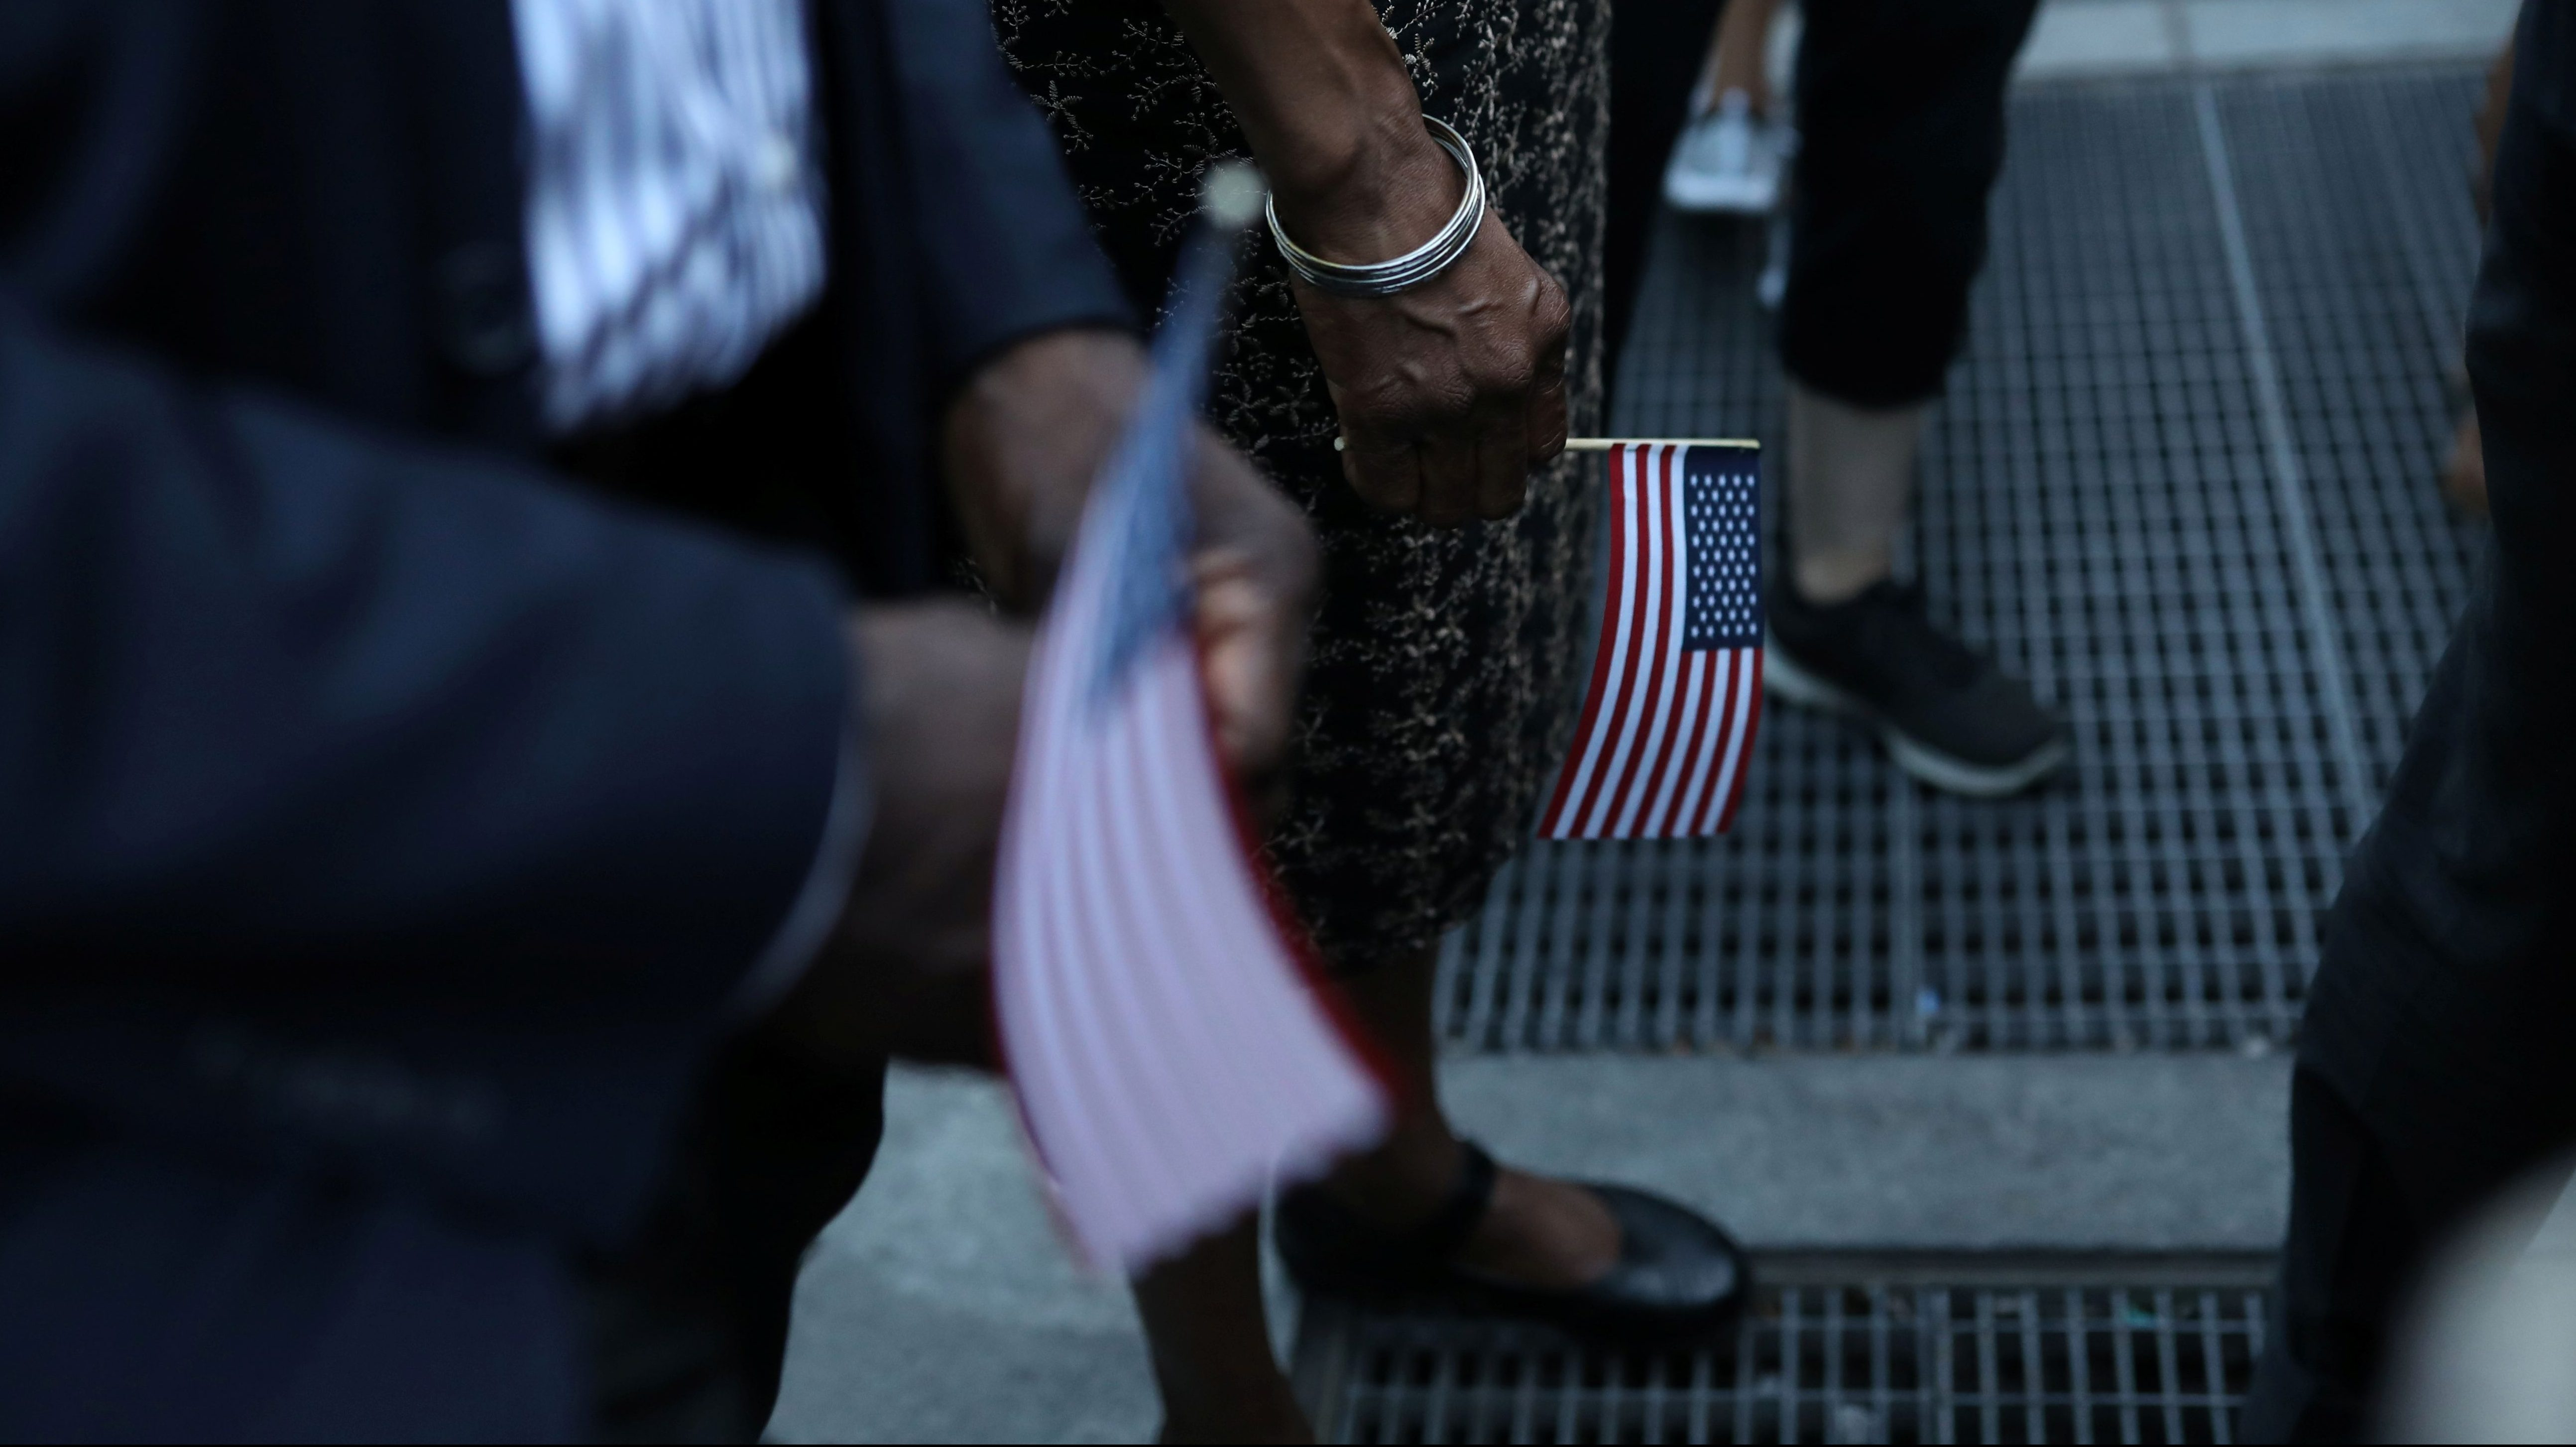 People hold American flags during protests against the planned dissolution of DACA in Manhattan, New York City